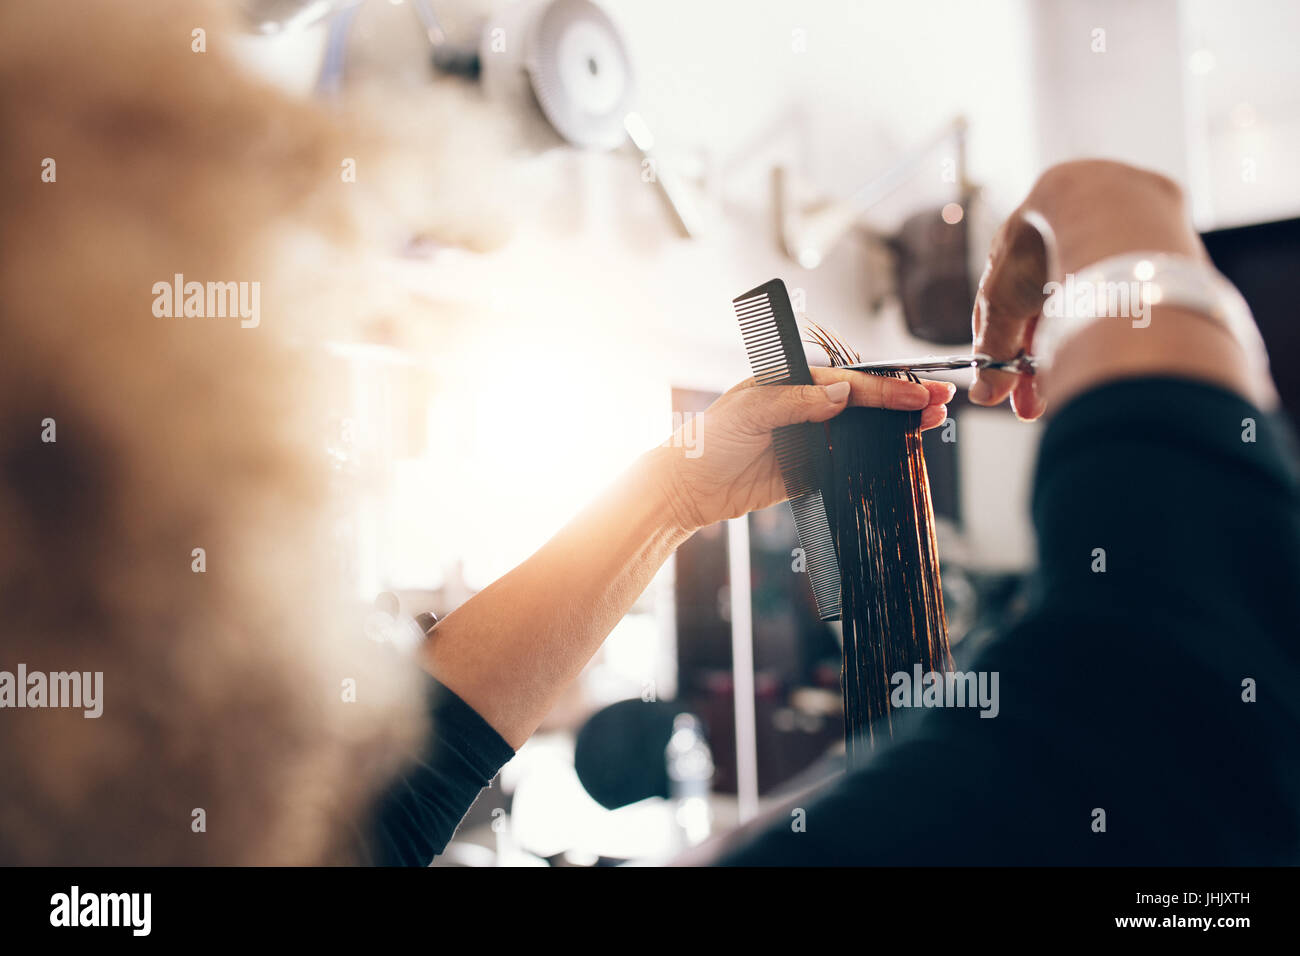 Hairdresser holding a strand of combed hair in between her fingers. Hairstylist cutting hair in a level. - Stock Image